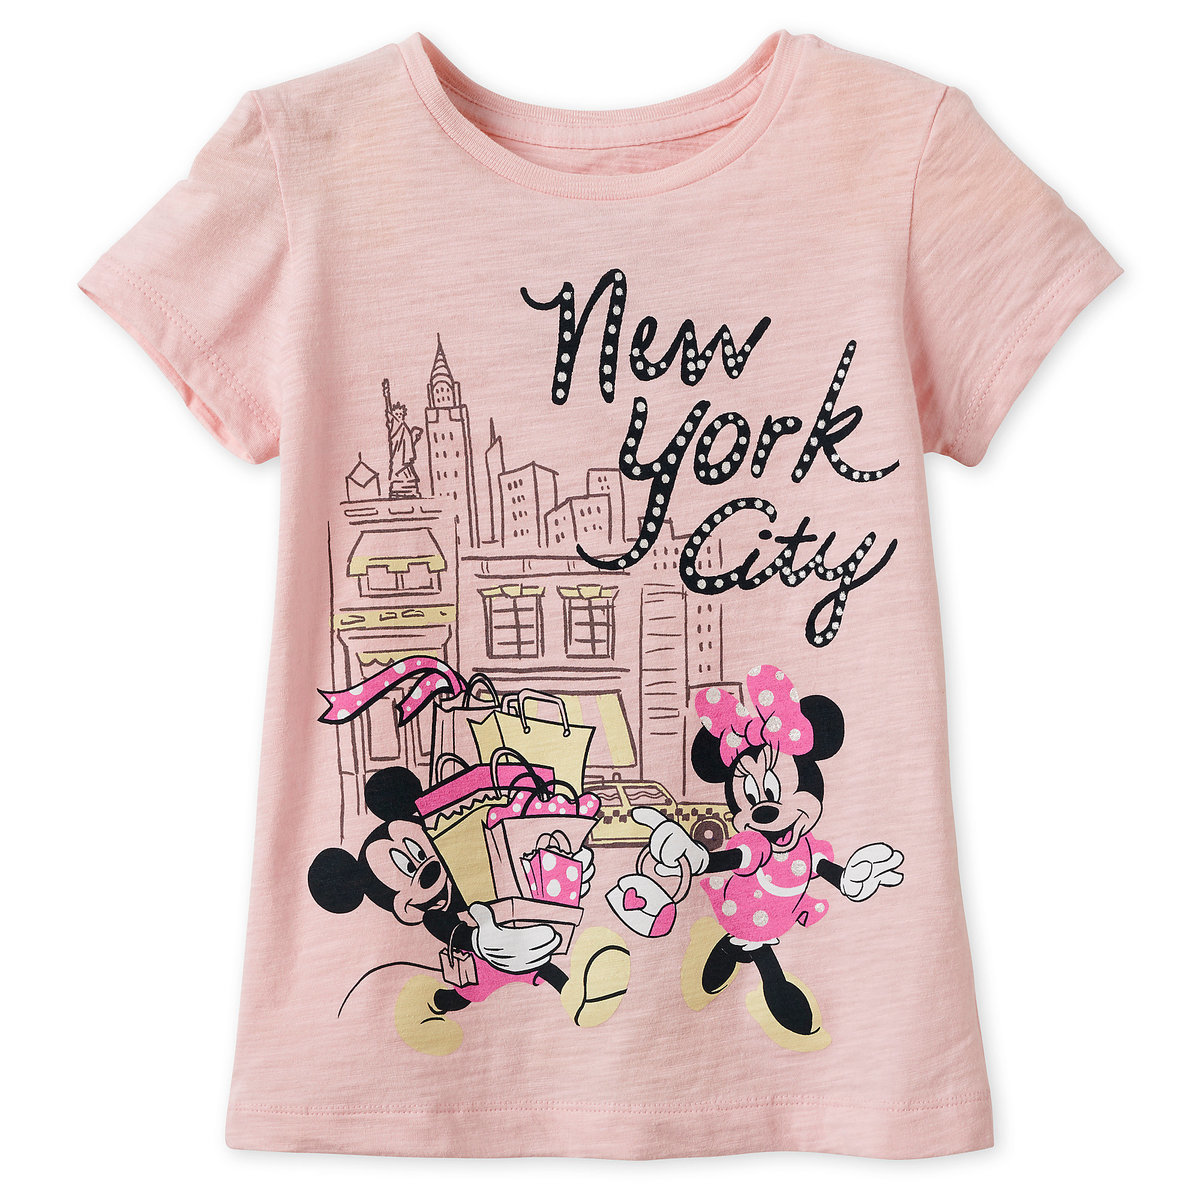 3f8219db8fd7 Product Image of Mickey and Minnie Mouse Shopping T-Shirt for Girls - New  York